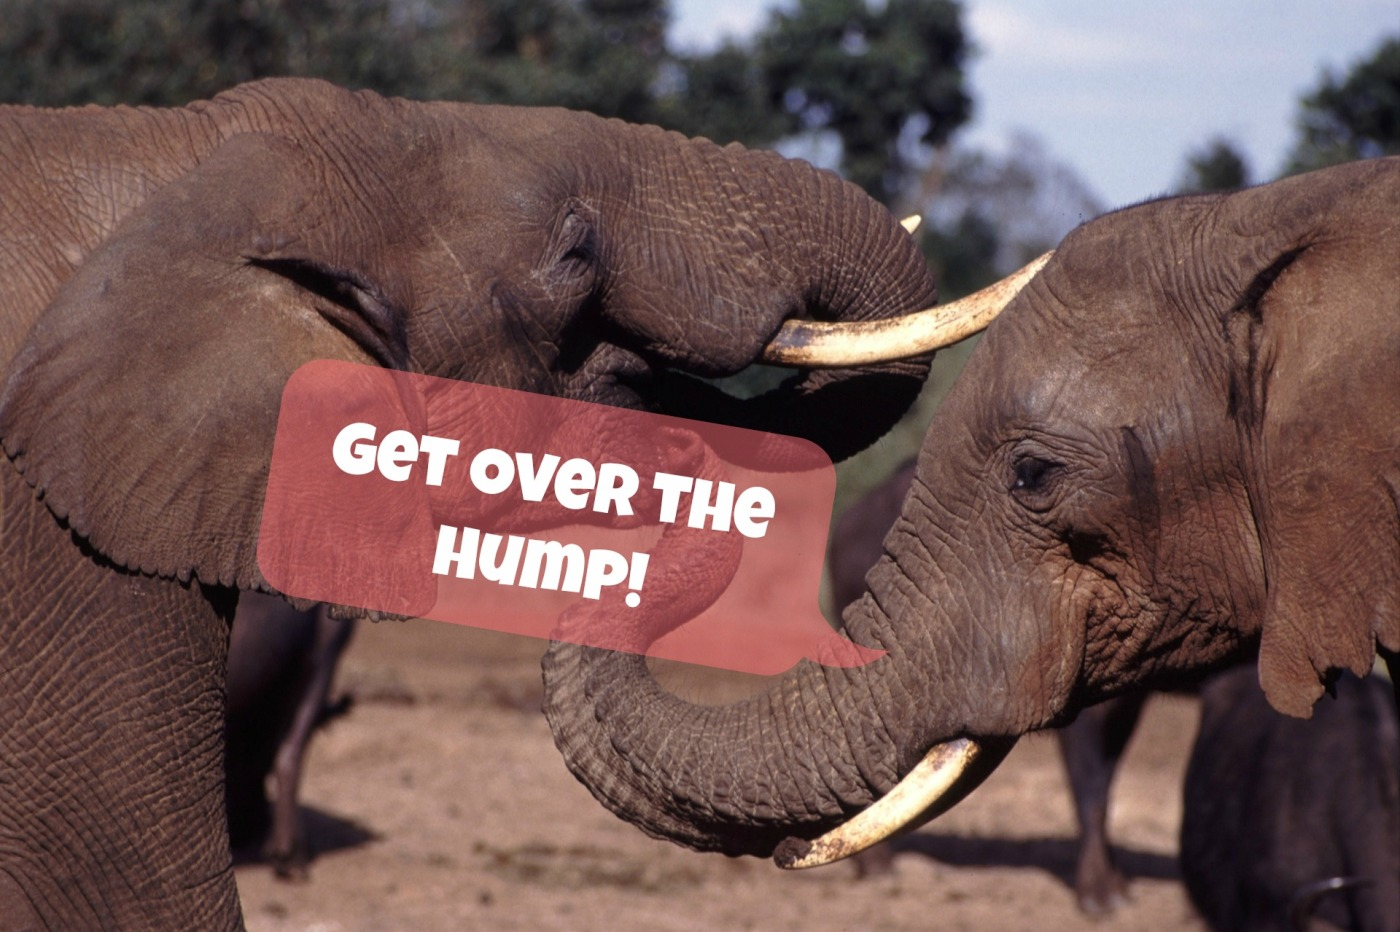 elephants get over the hump day banner | the lonely tribalist